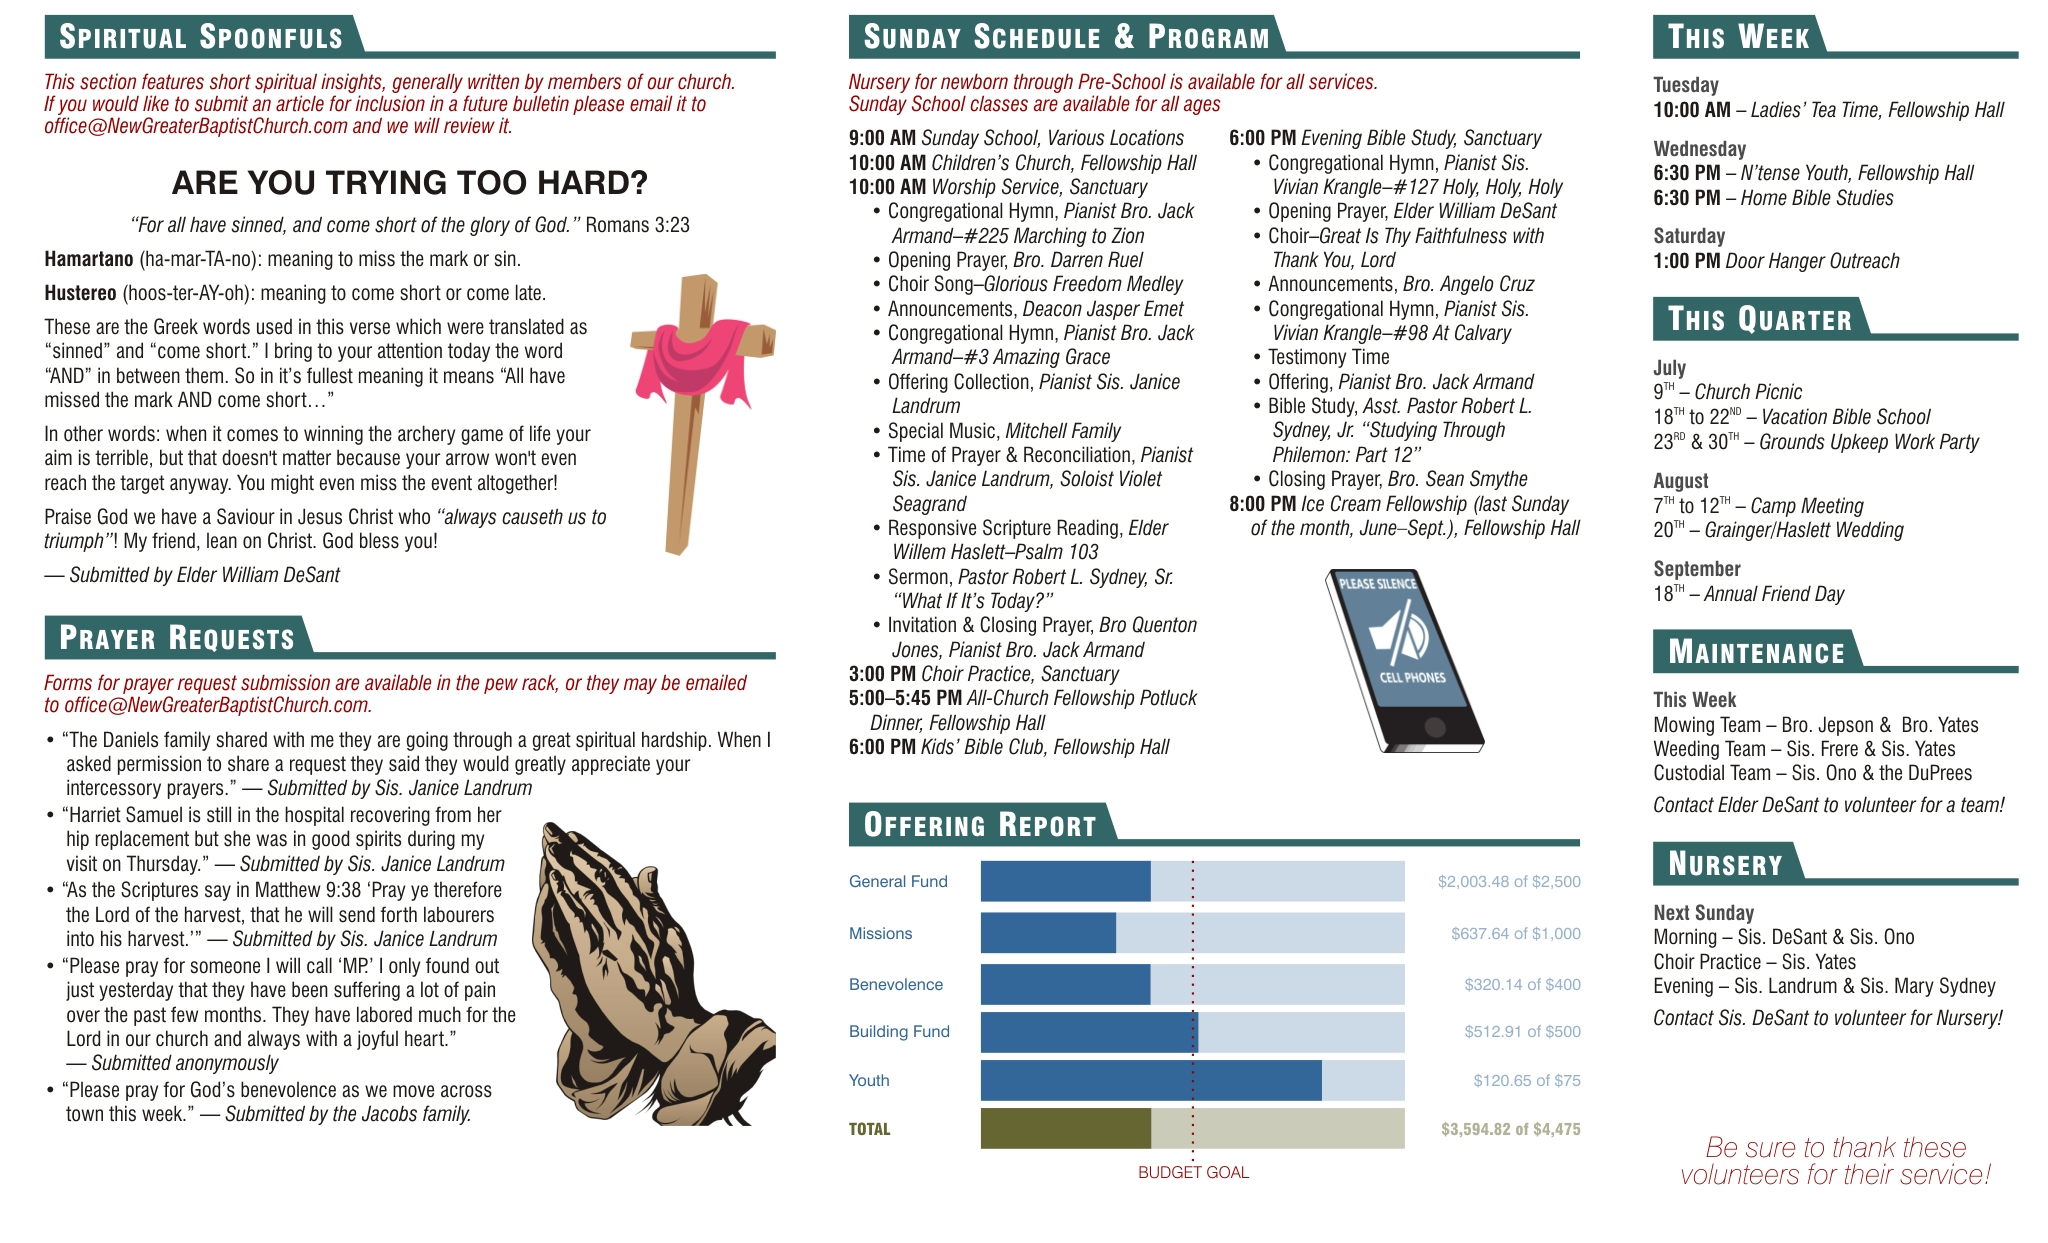 Church bulletin how to make your church bulletin as effective as possible for How to make a church bulletin